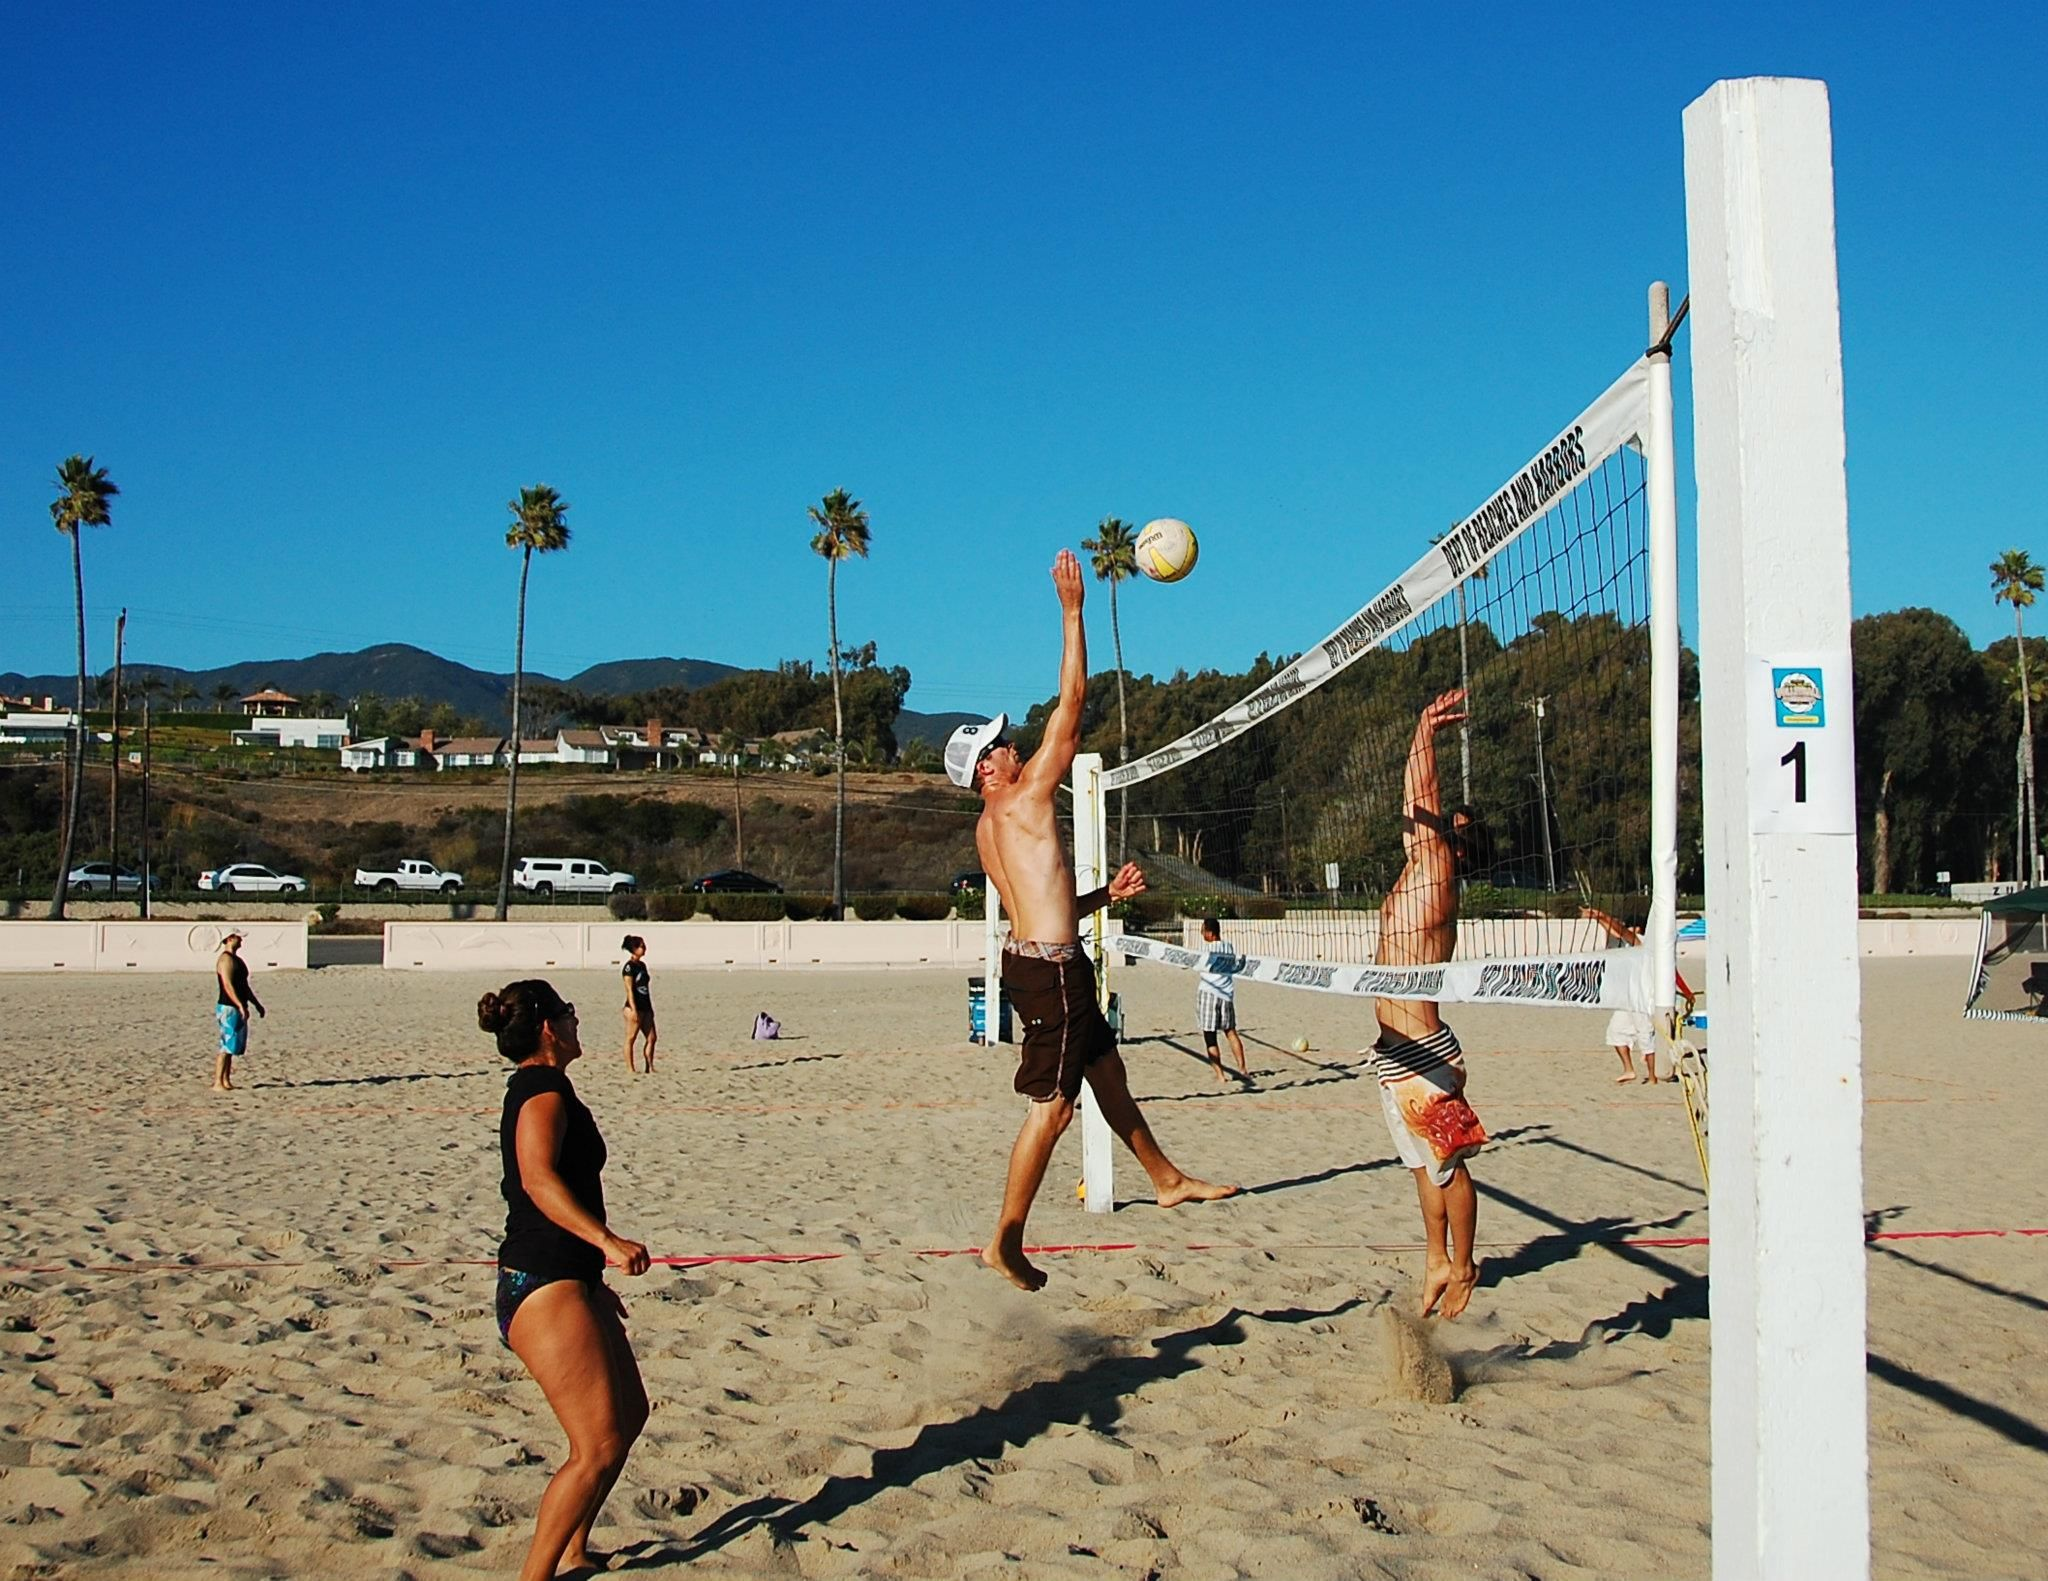 Justin From Media Planning Prepares To Spike During An Intense Game Of Beach Volleyball Here In Beautiful Santa Mon Intense Games Beach Volleyball Santa Monica